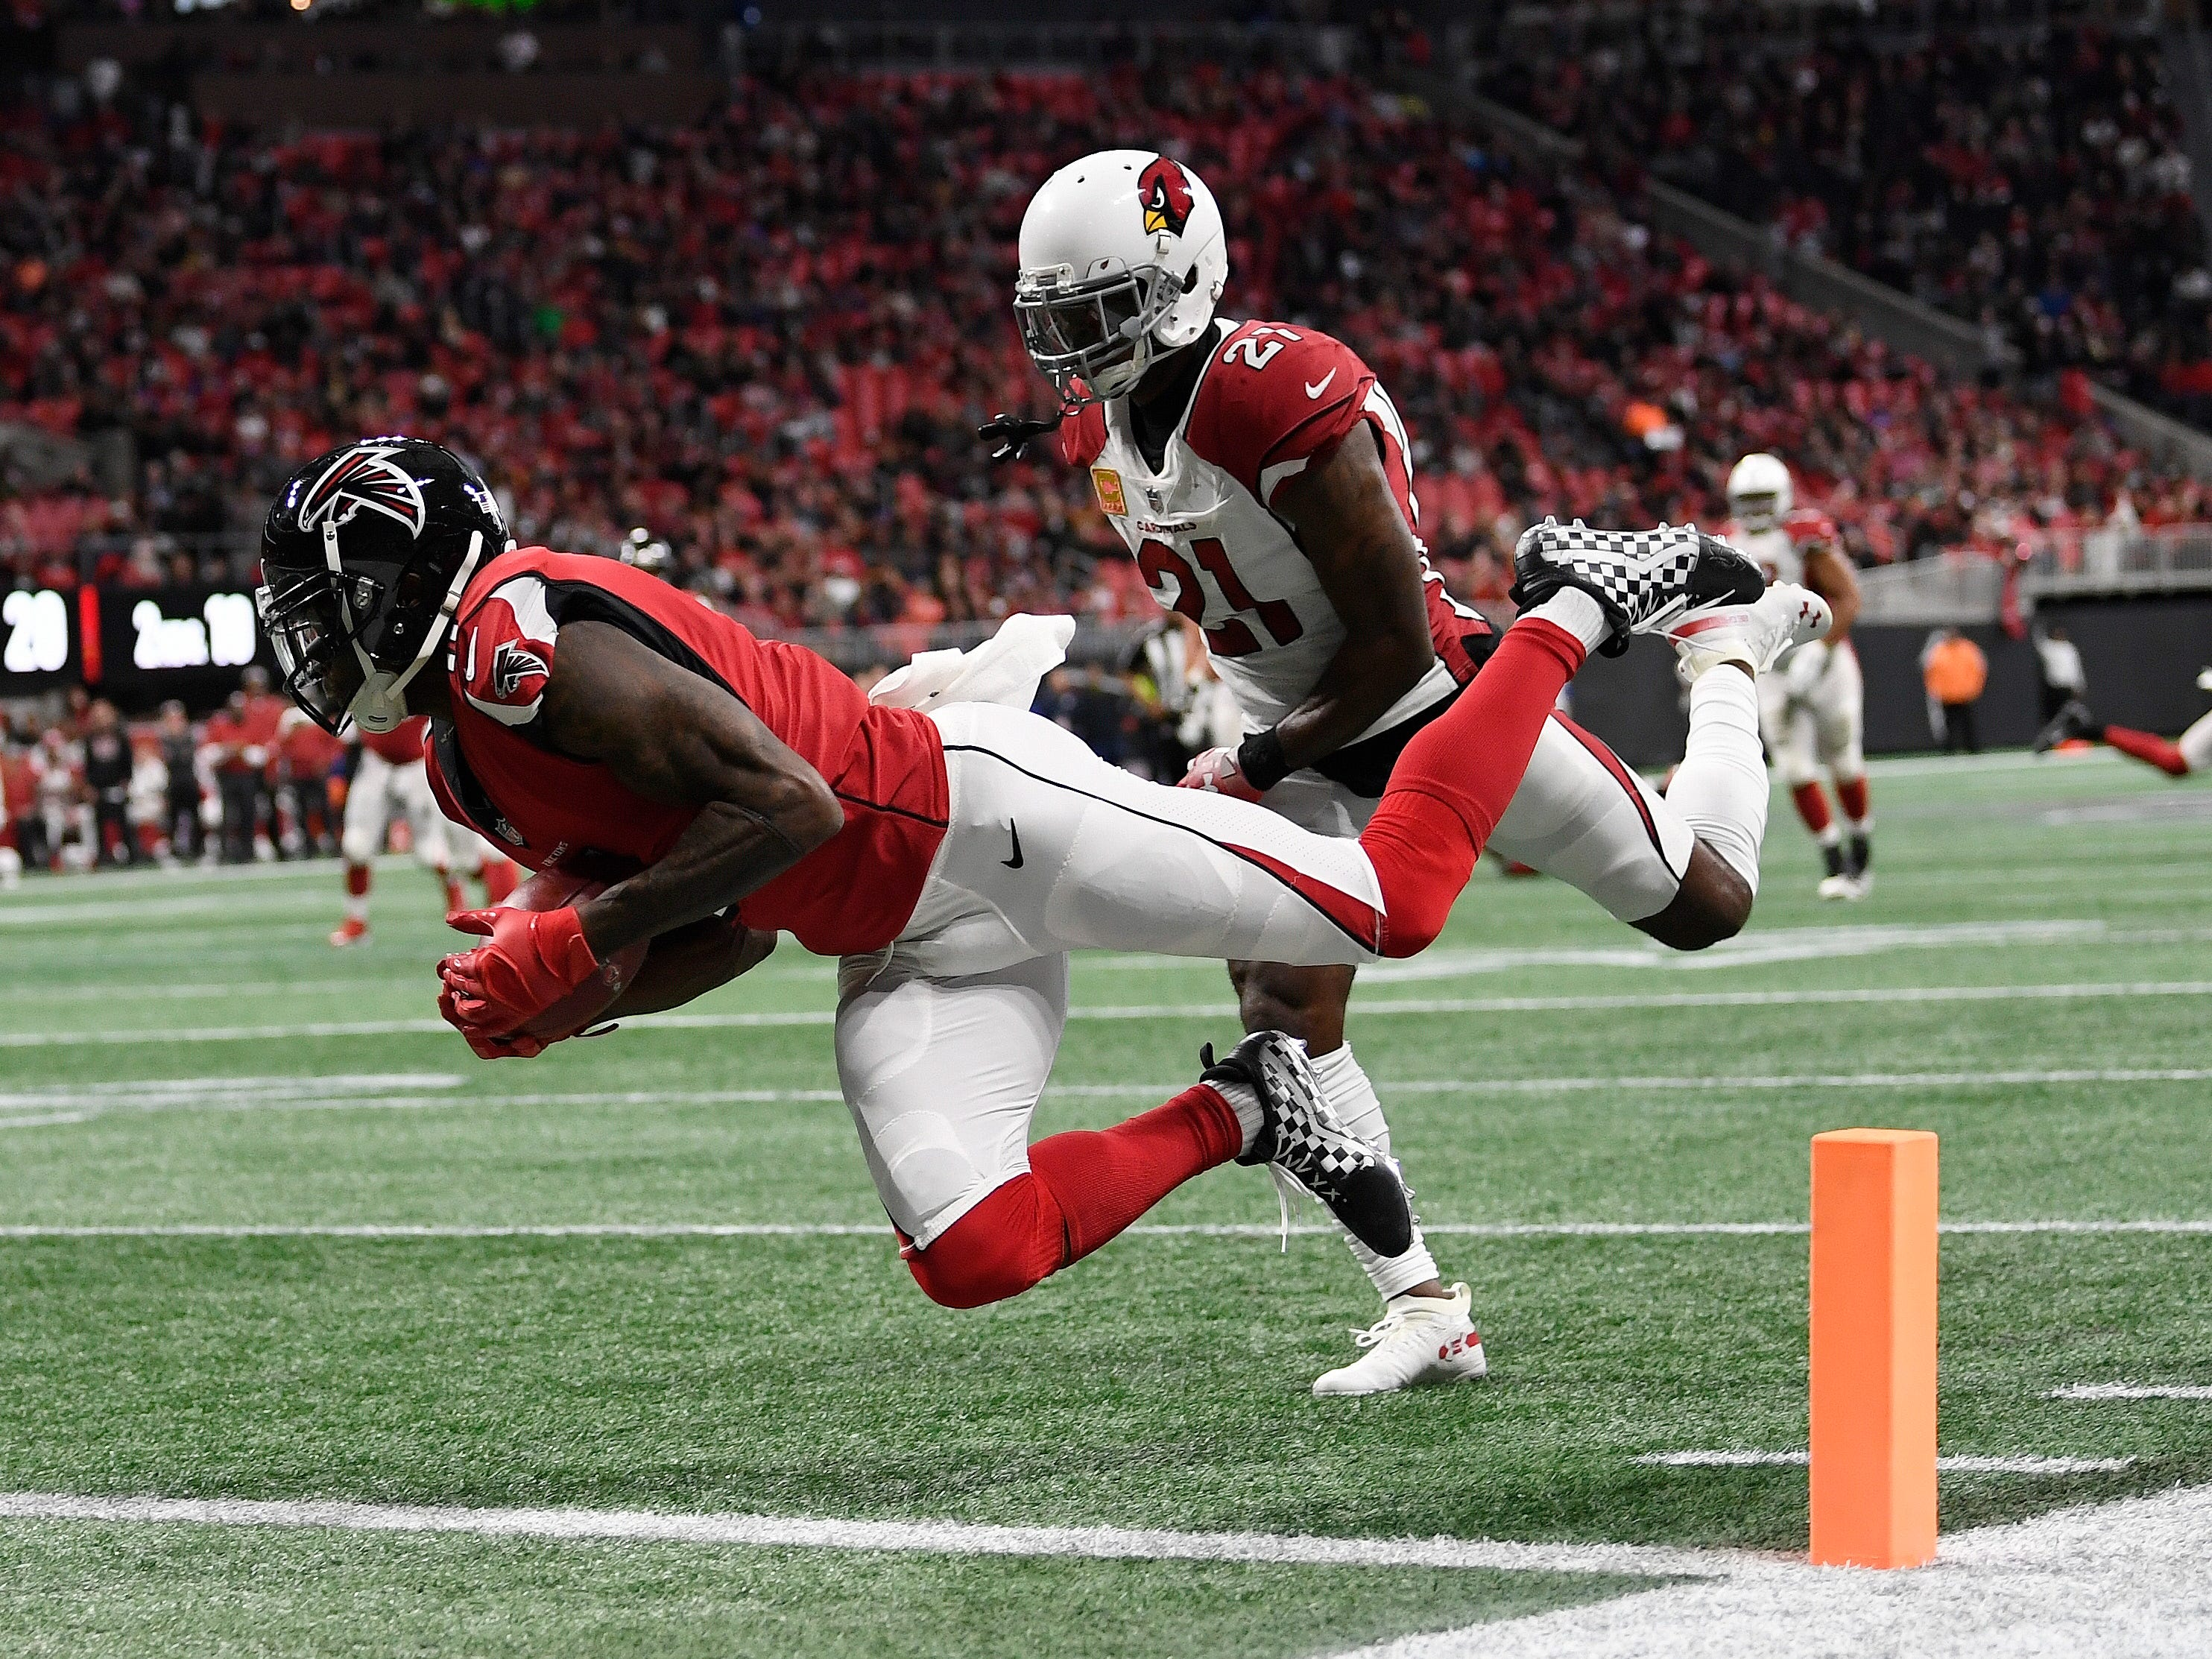 Atlanta Falcons wide receiver Julio Jones (11) makes a touchdown catch against Arizona Cardinals cornerback Patrick Peterson (21) during the first half of an NFL football game, Sunday, Dec. 16, 2018, in Atlanta.